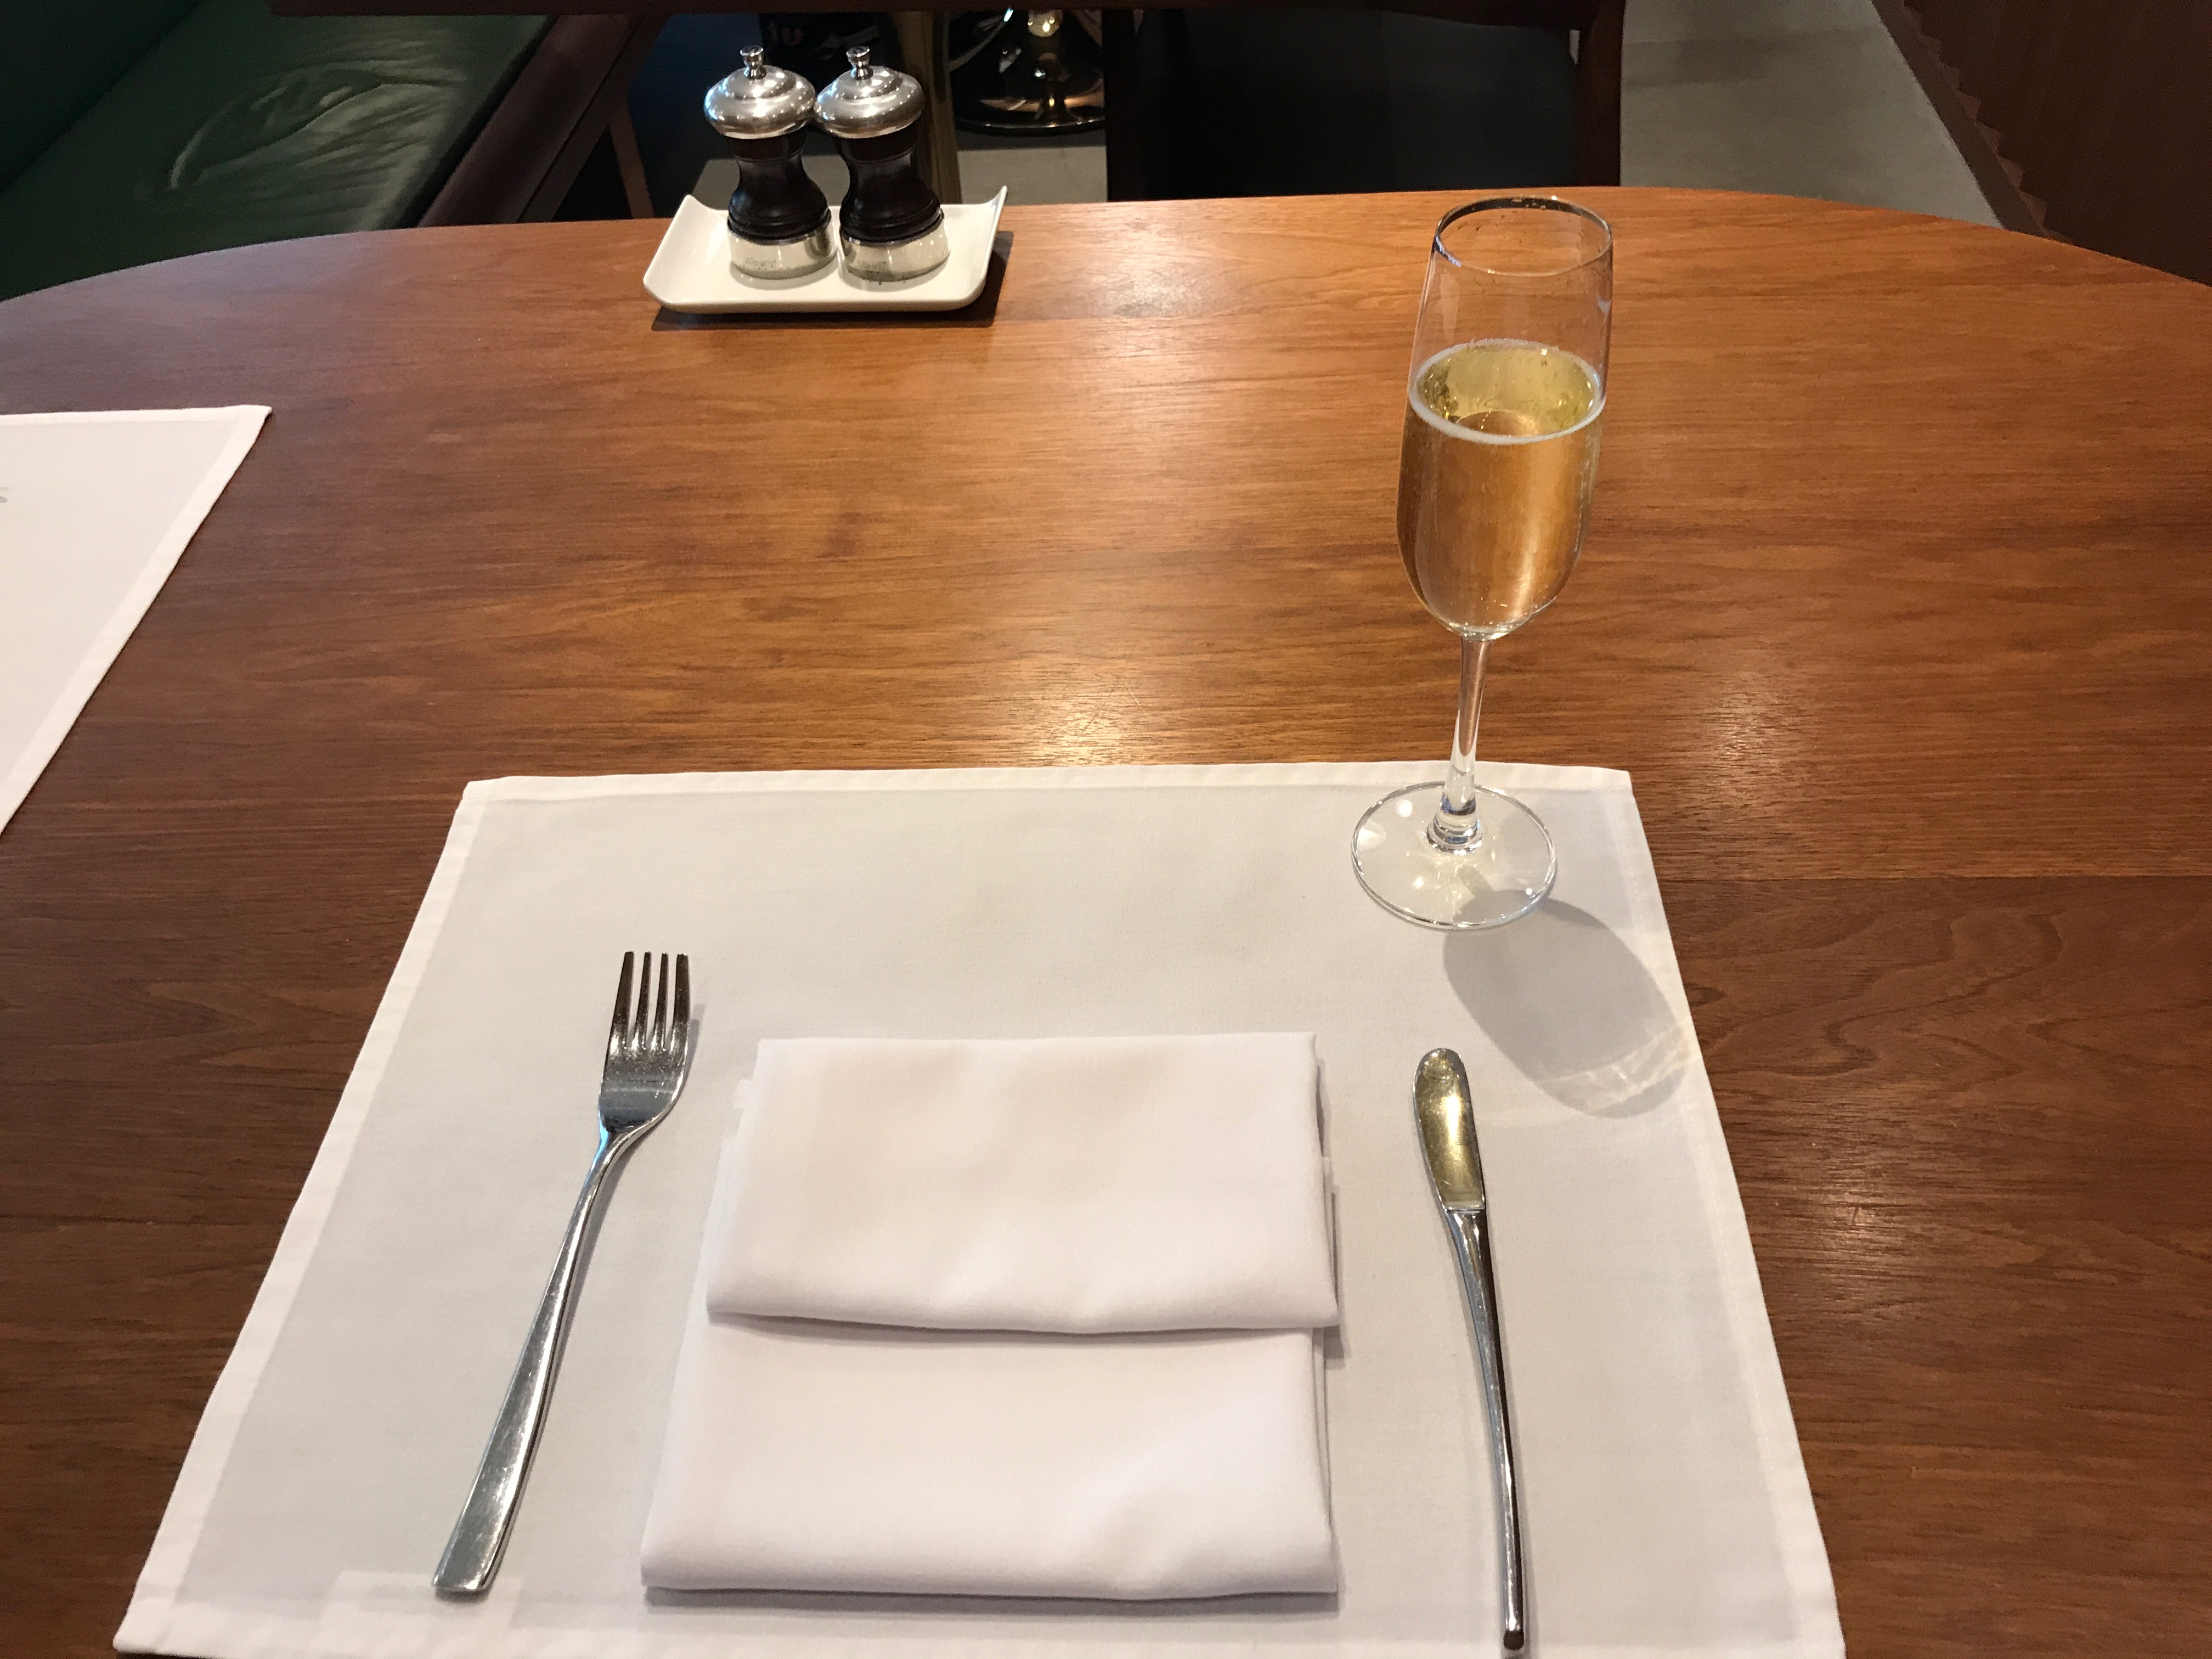 cathay pacific table with a glass of champagne at Heathrow terminal 3